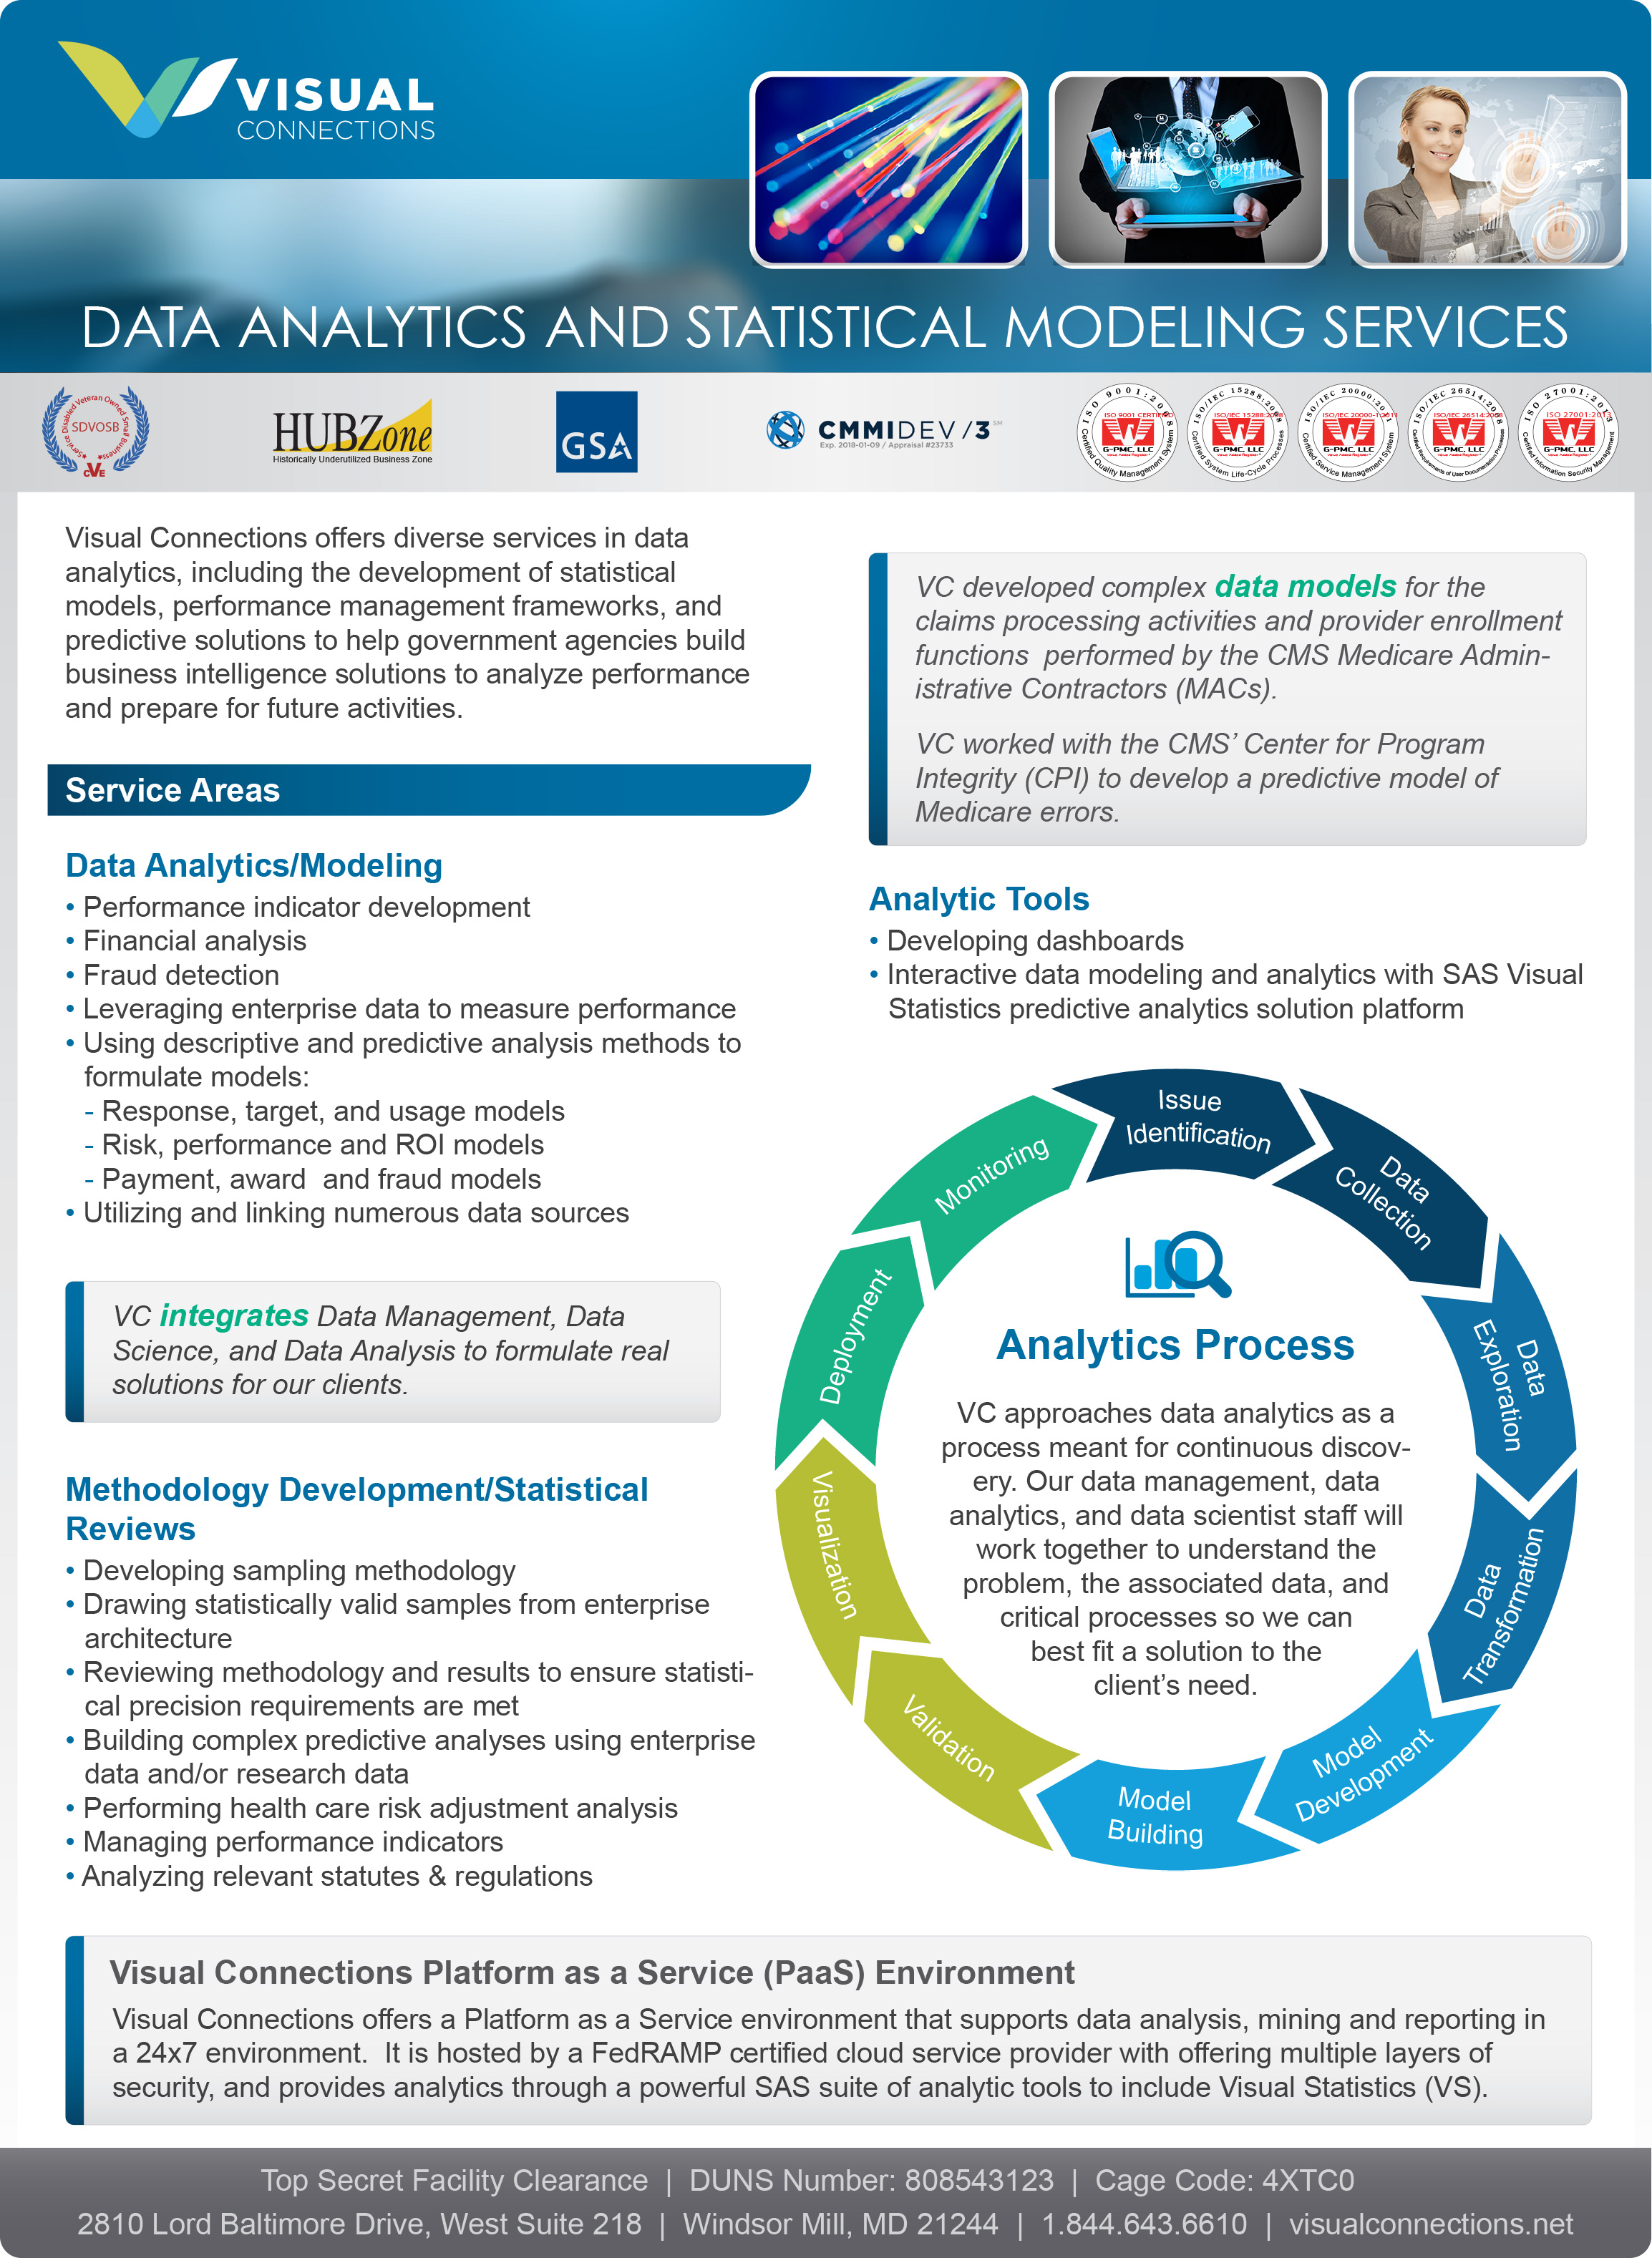 DATA ANALYTICS AND STATISTICAL MODELING SERVICES -